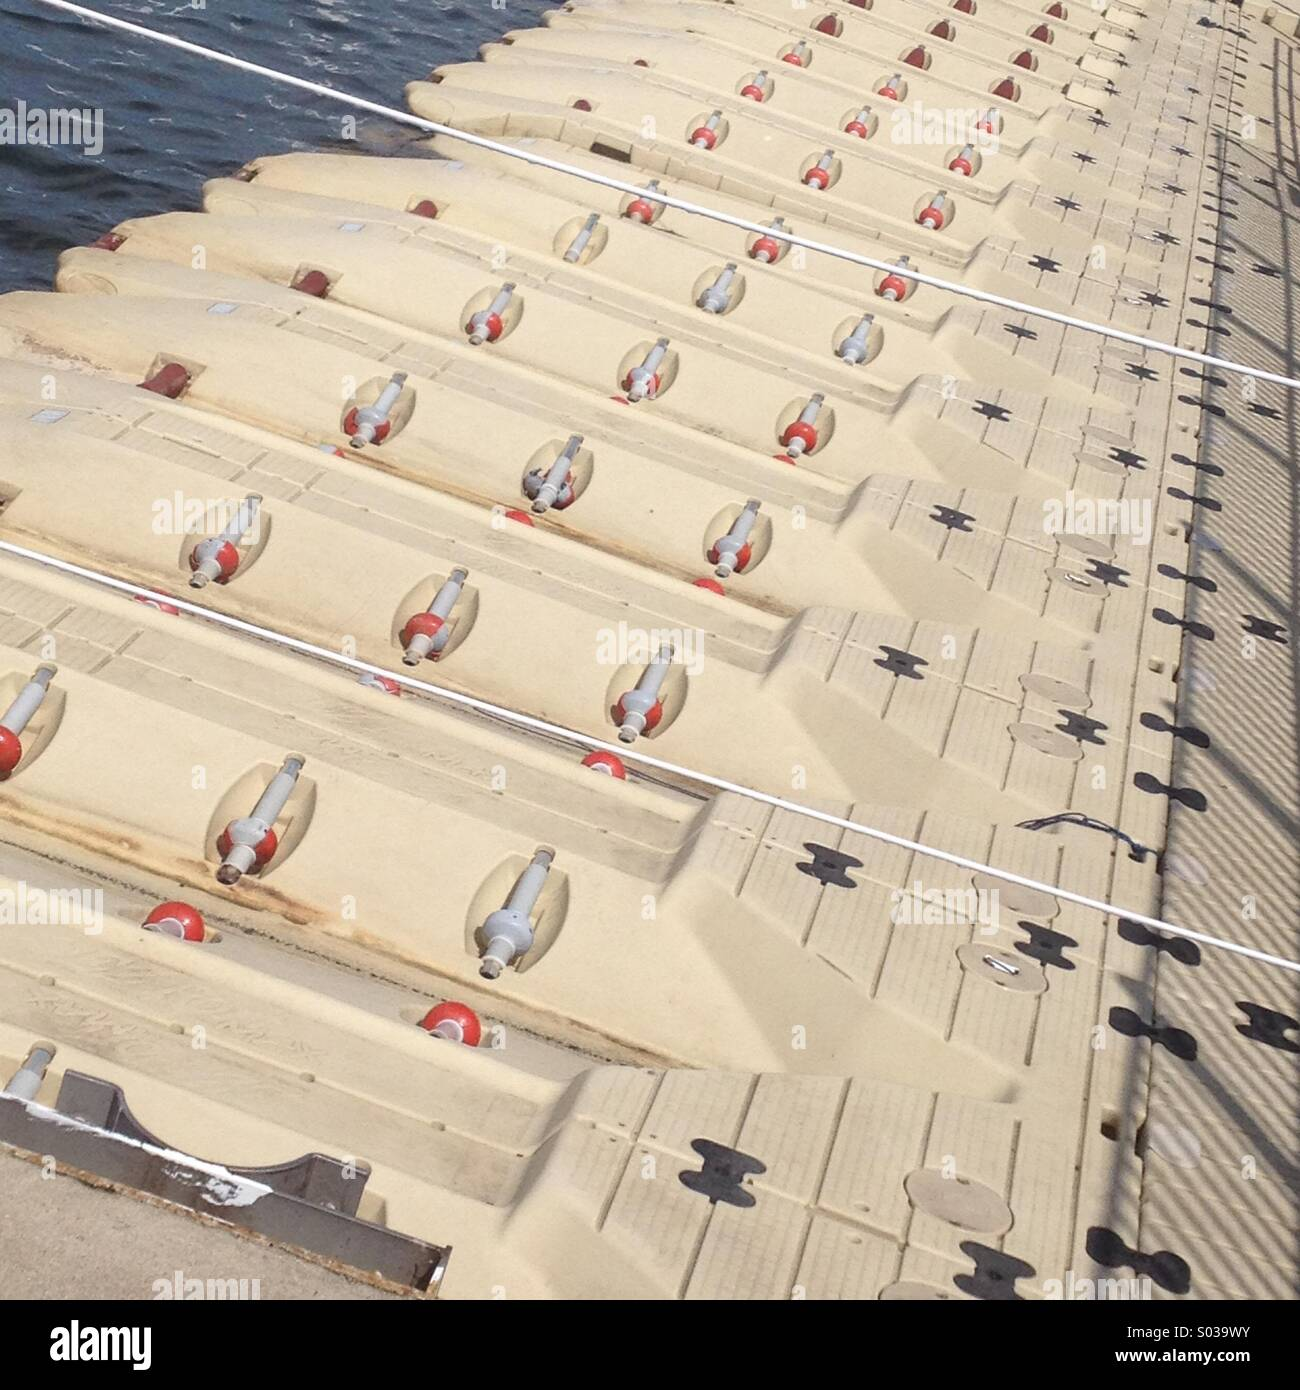 Marina symmetry : Long concrete dock for jet skis - Stock Image